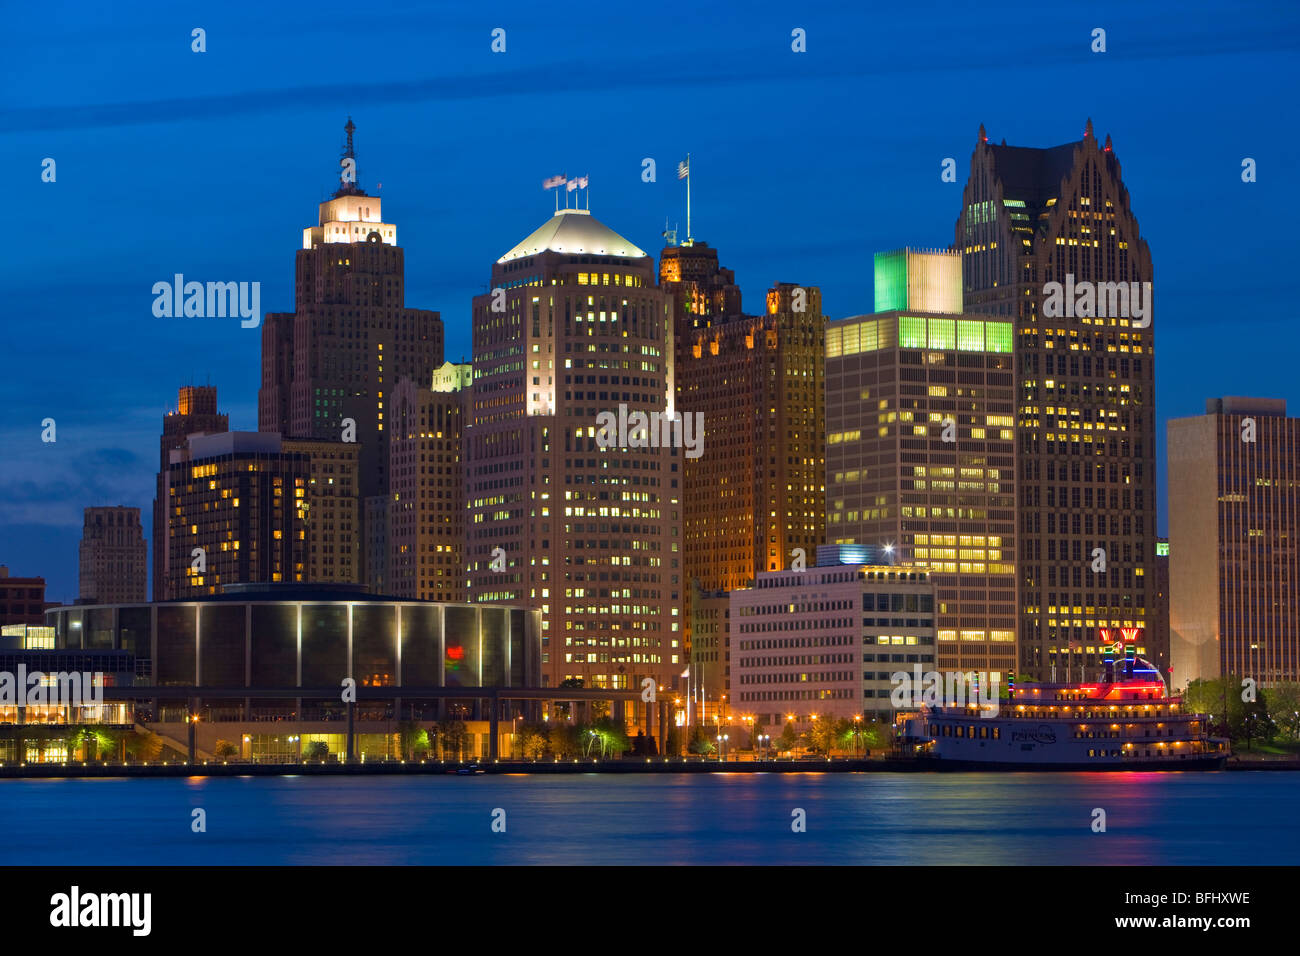 Skyline of the city of Detroit at dusk on the Detroit River in Michigan, USA seen from the city of Windsor, Ontario, - Stock Image